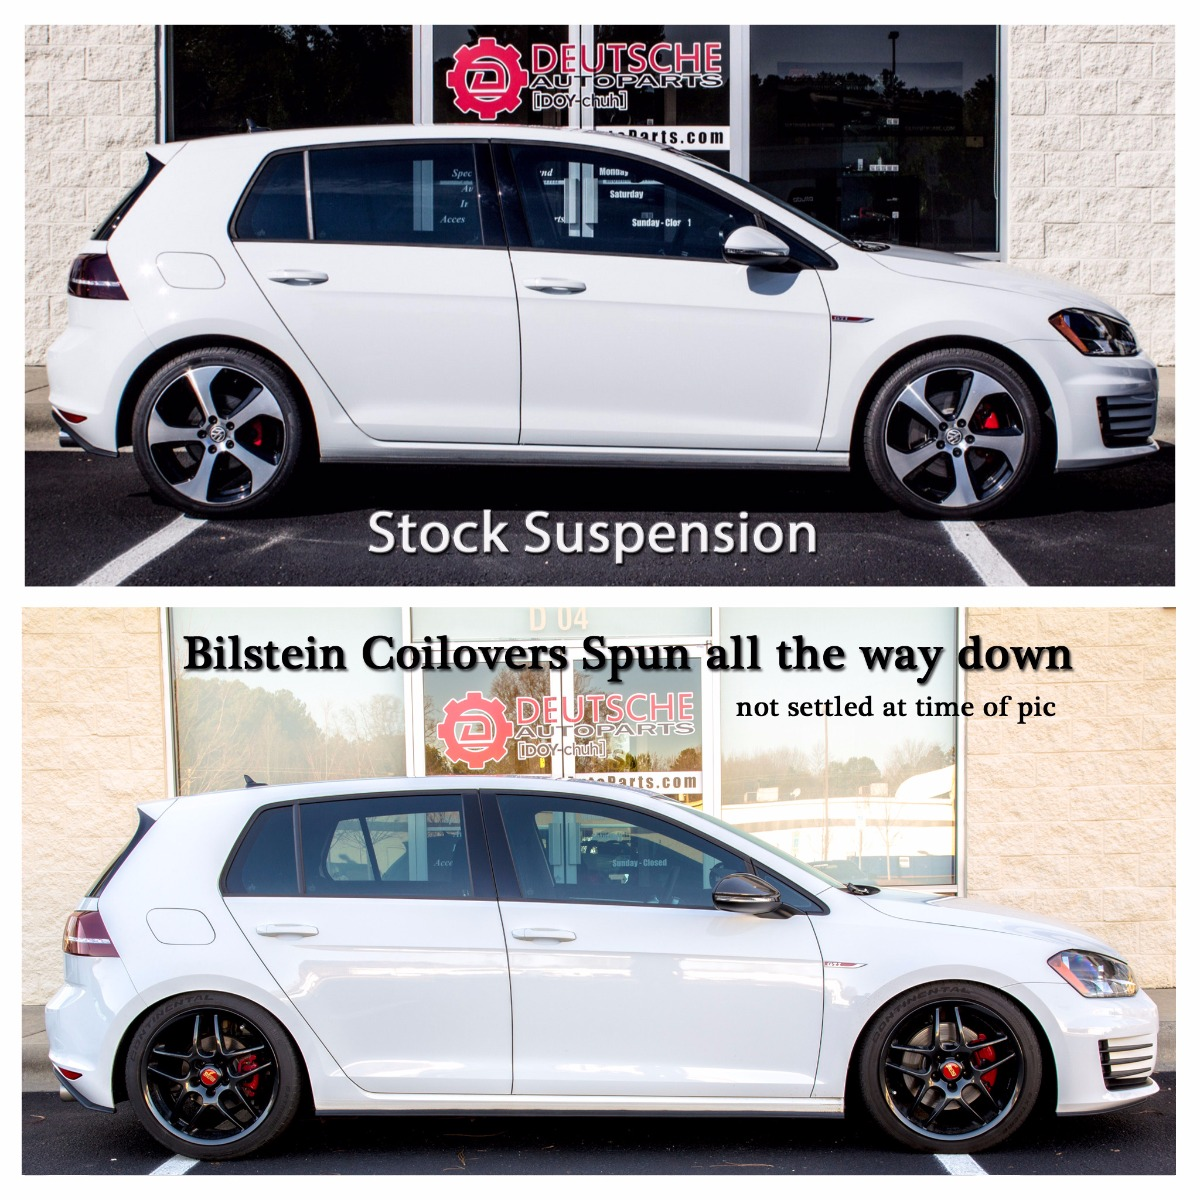 MK7 GTI Coilovers before and after